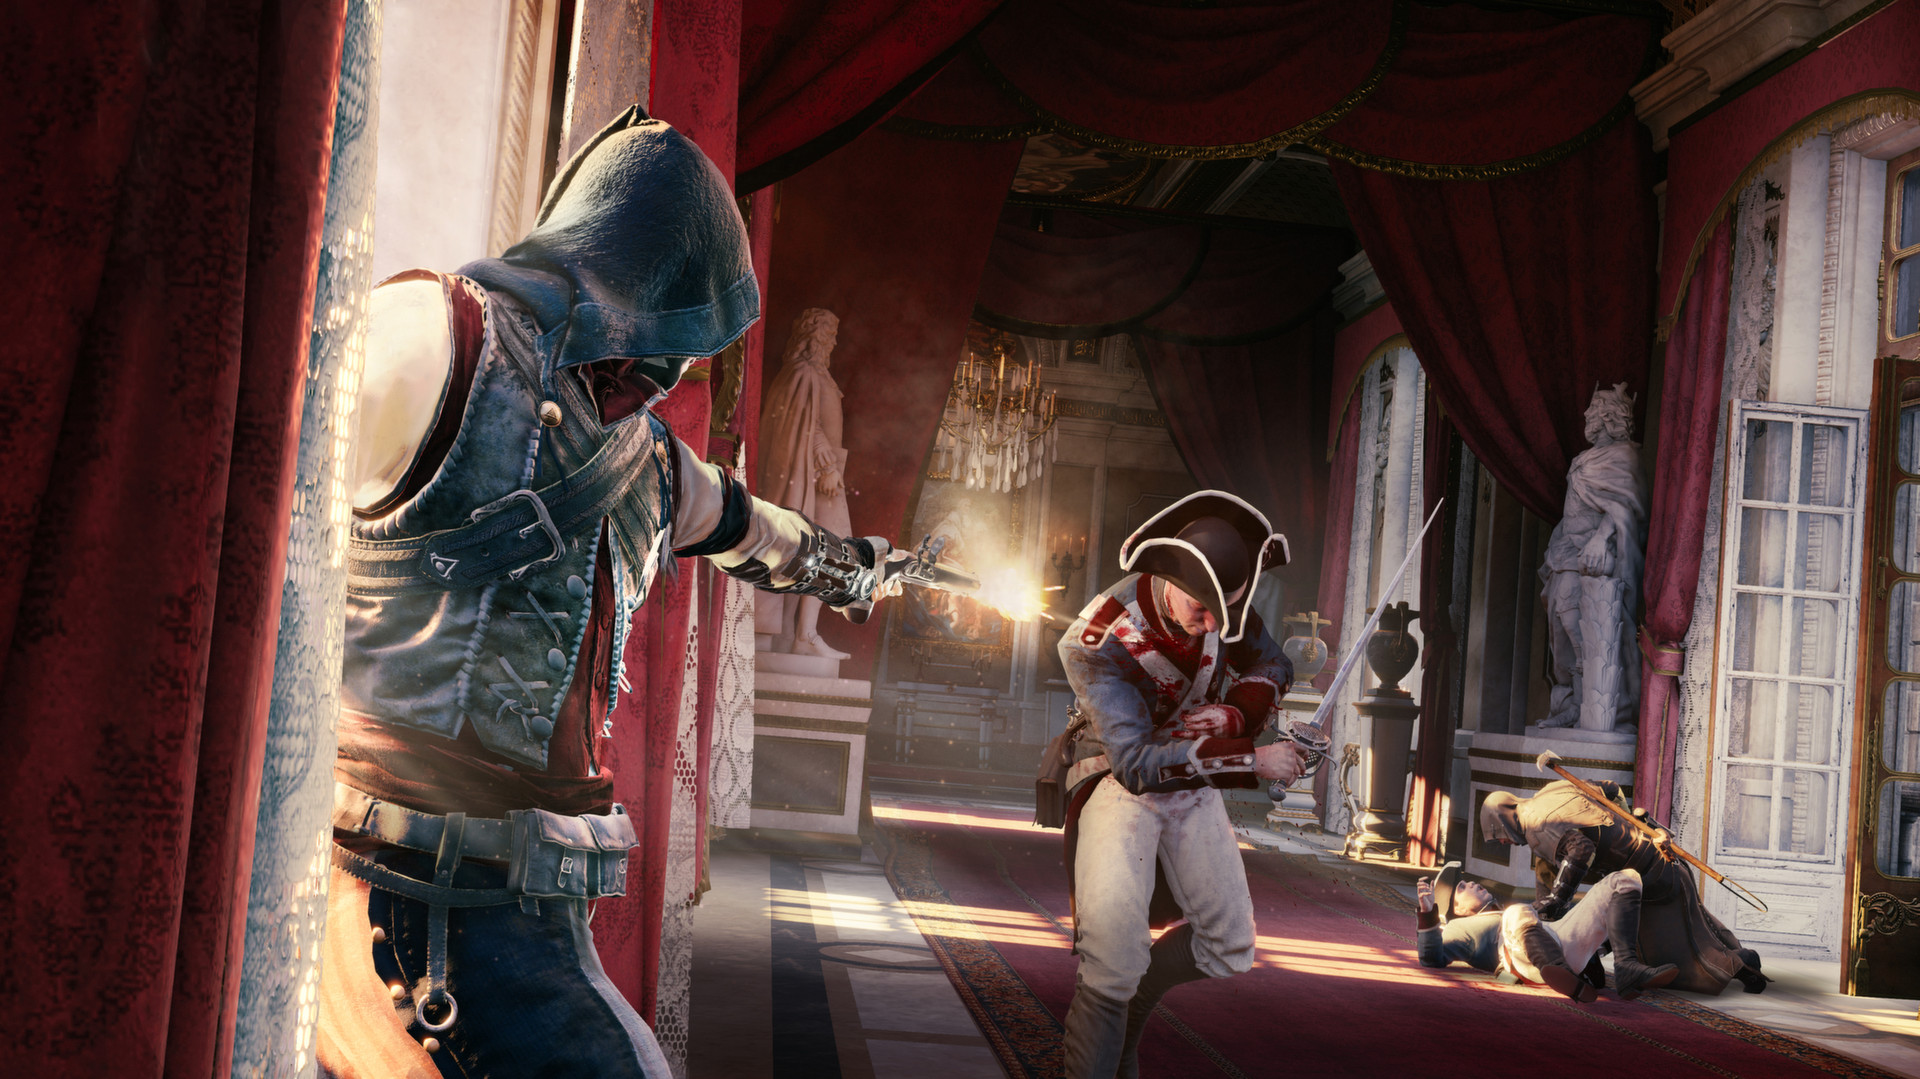 download assassin's creed unity v1.5.0 include all dlc and latest update cracked skidrow copiapop diskokosmiko